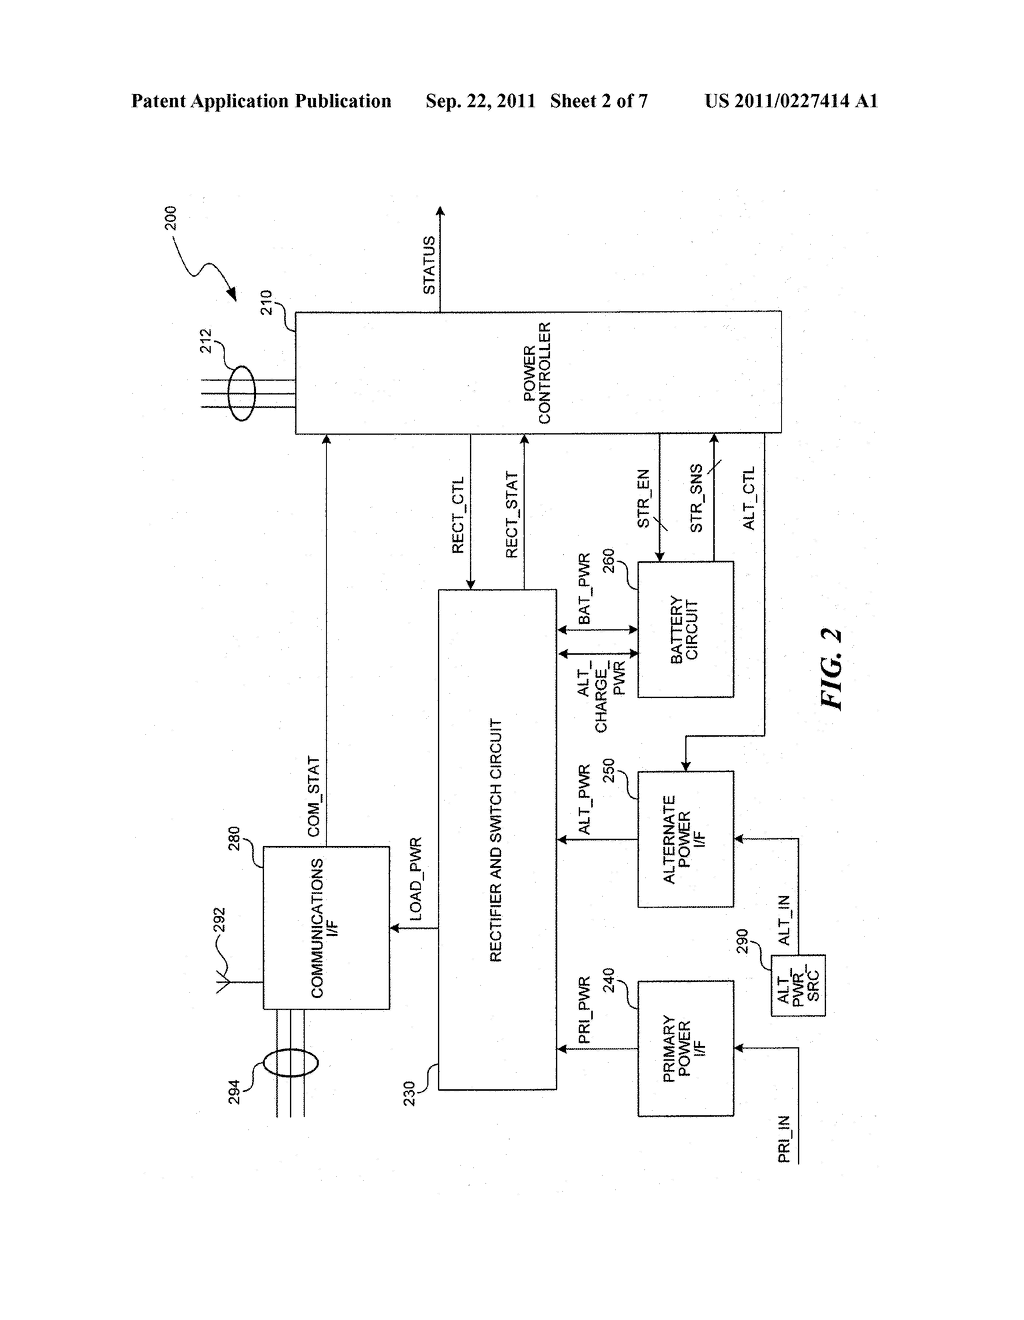 hight resolution of cell site power system management including battery circuit management diagram schematic and image 03